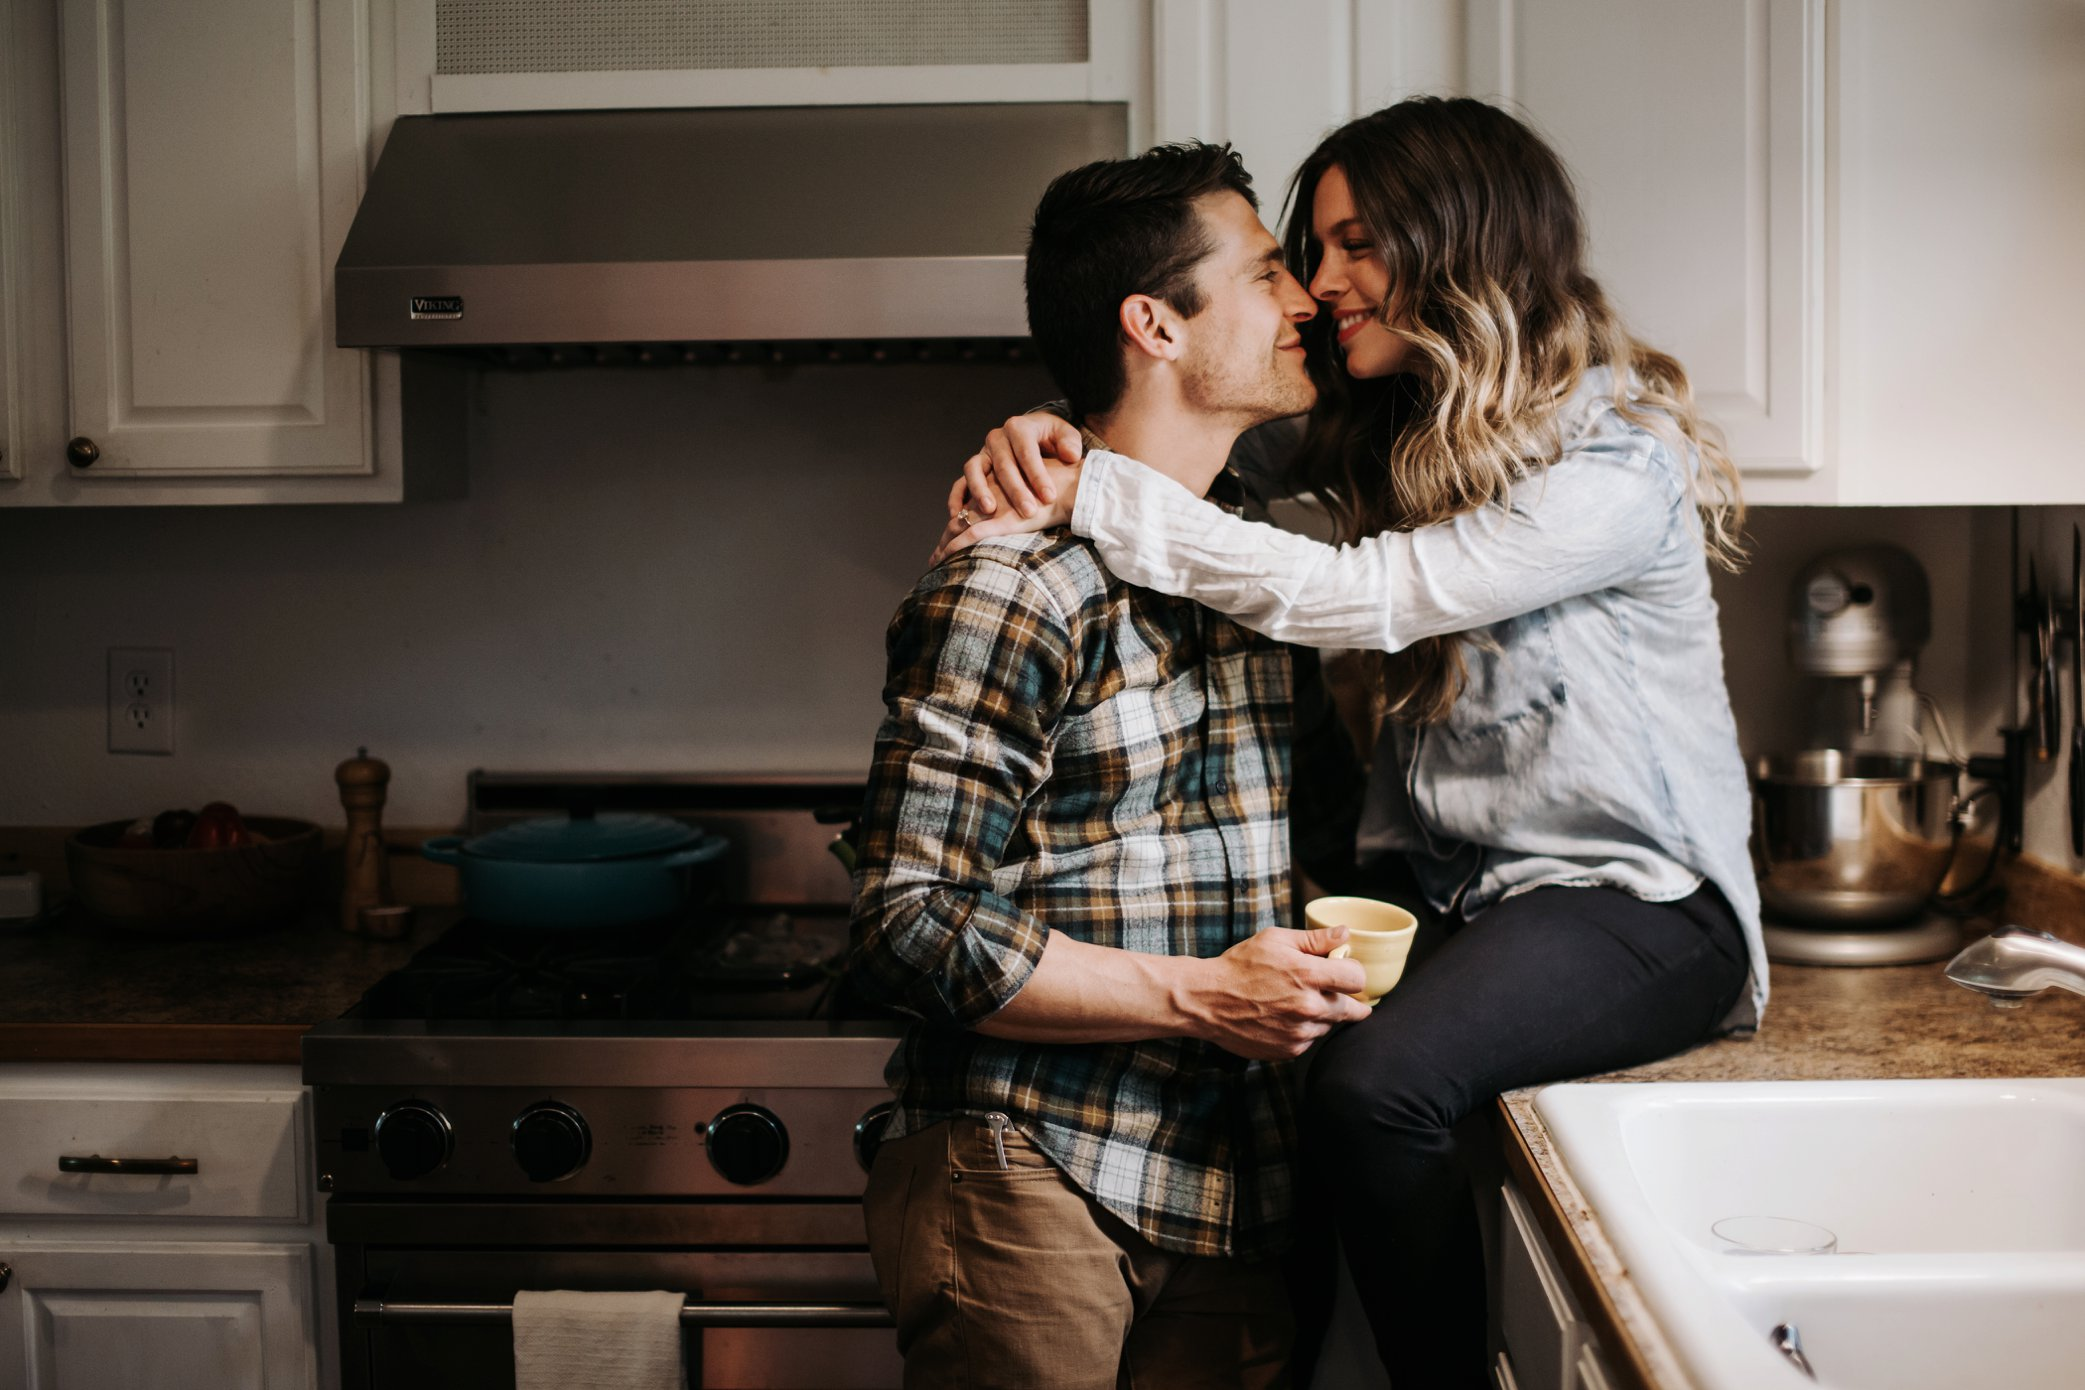 engagement photos in kitchen